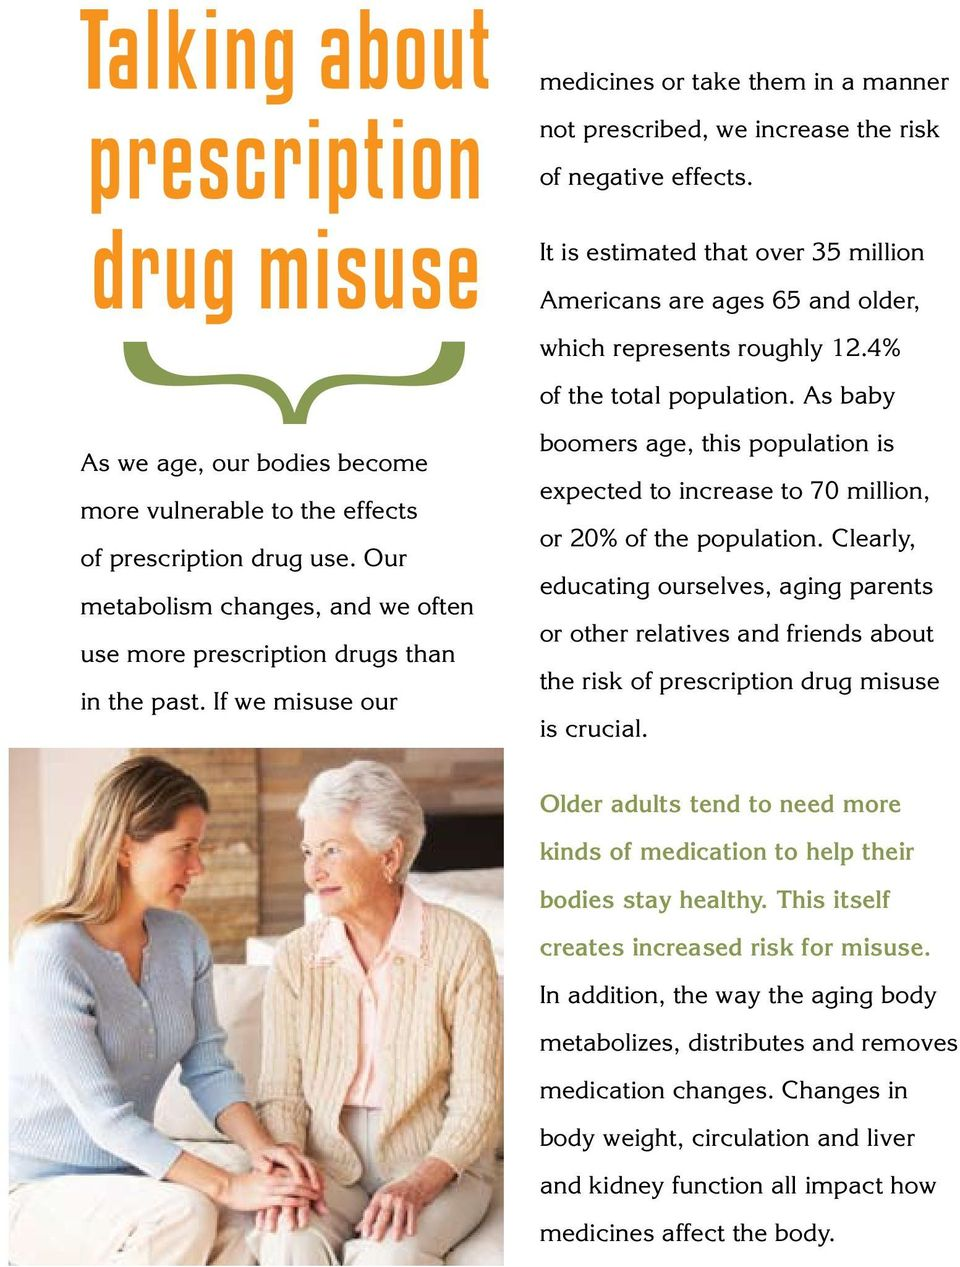 Our metabolism changes, and we often use more prescription drugs than in the past. If we misuse our boomers age, this population is expected to increase to 70 million, or 20% of the population.